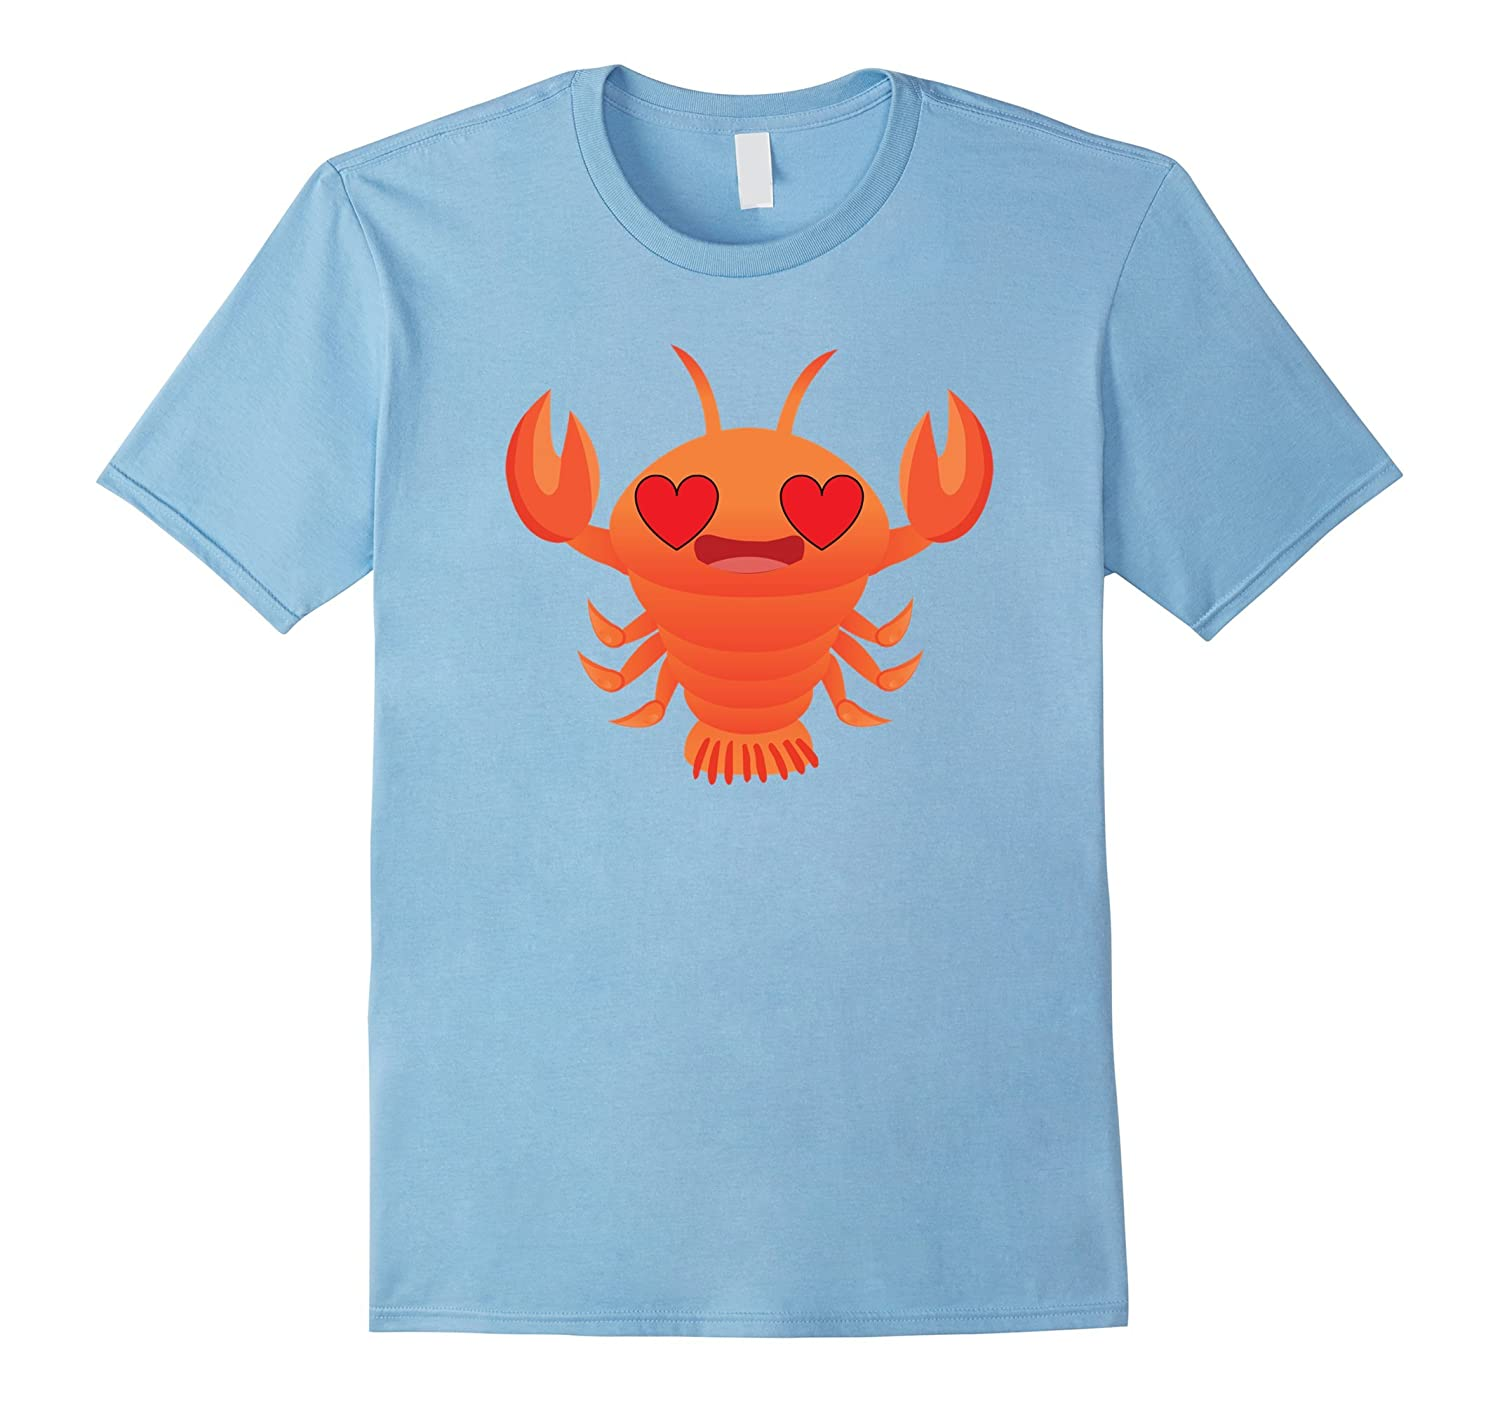 Lobster Emoji Heart Eye Shirt T-Shirt Tee-CL